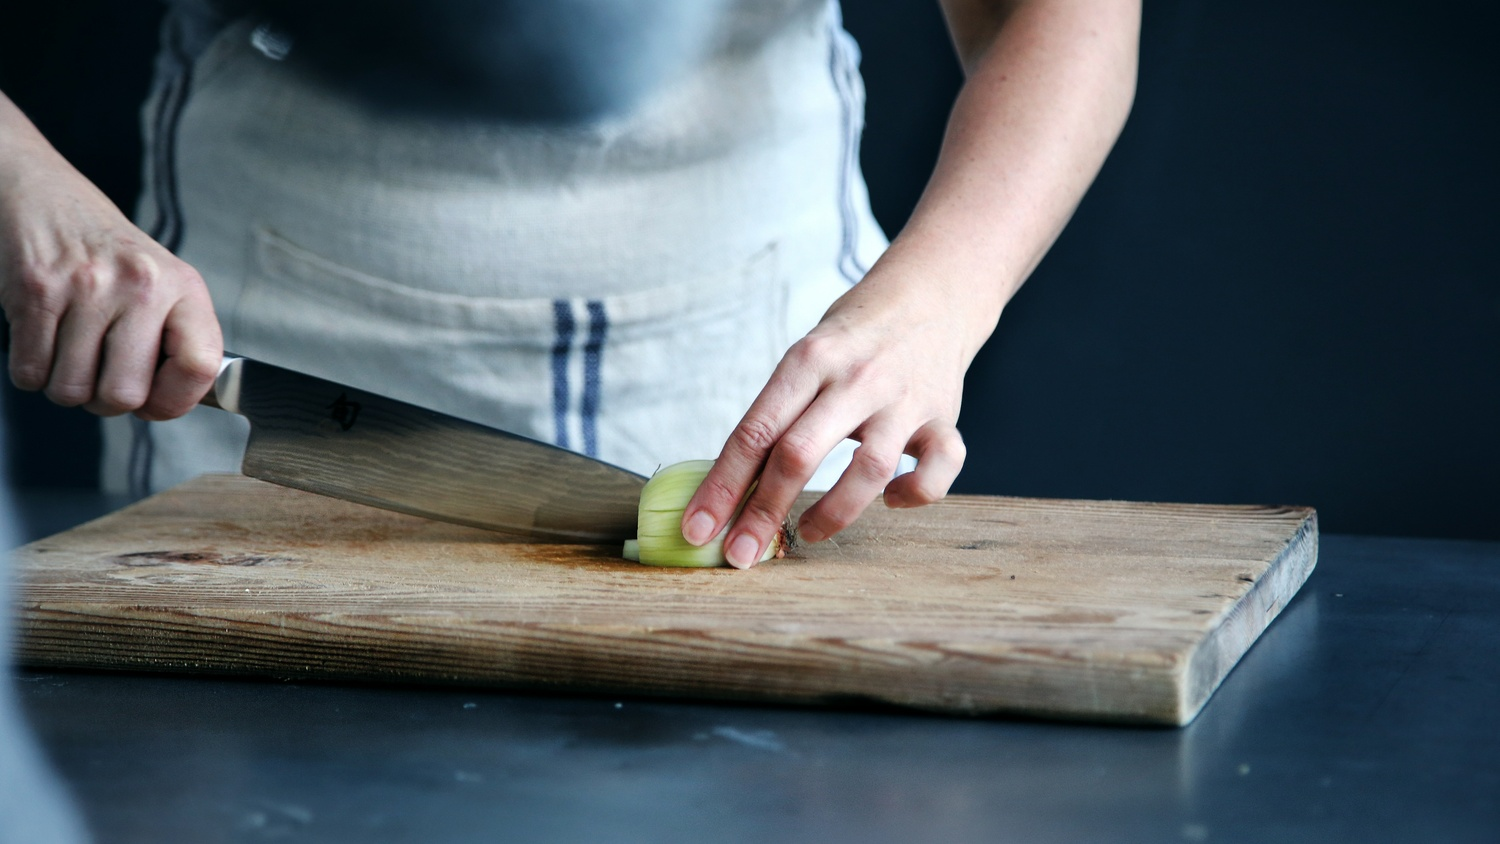 Chef slices an onion on a cutting board - Möbel Preiss